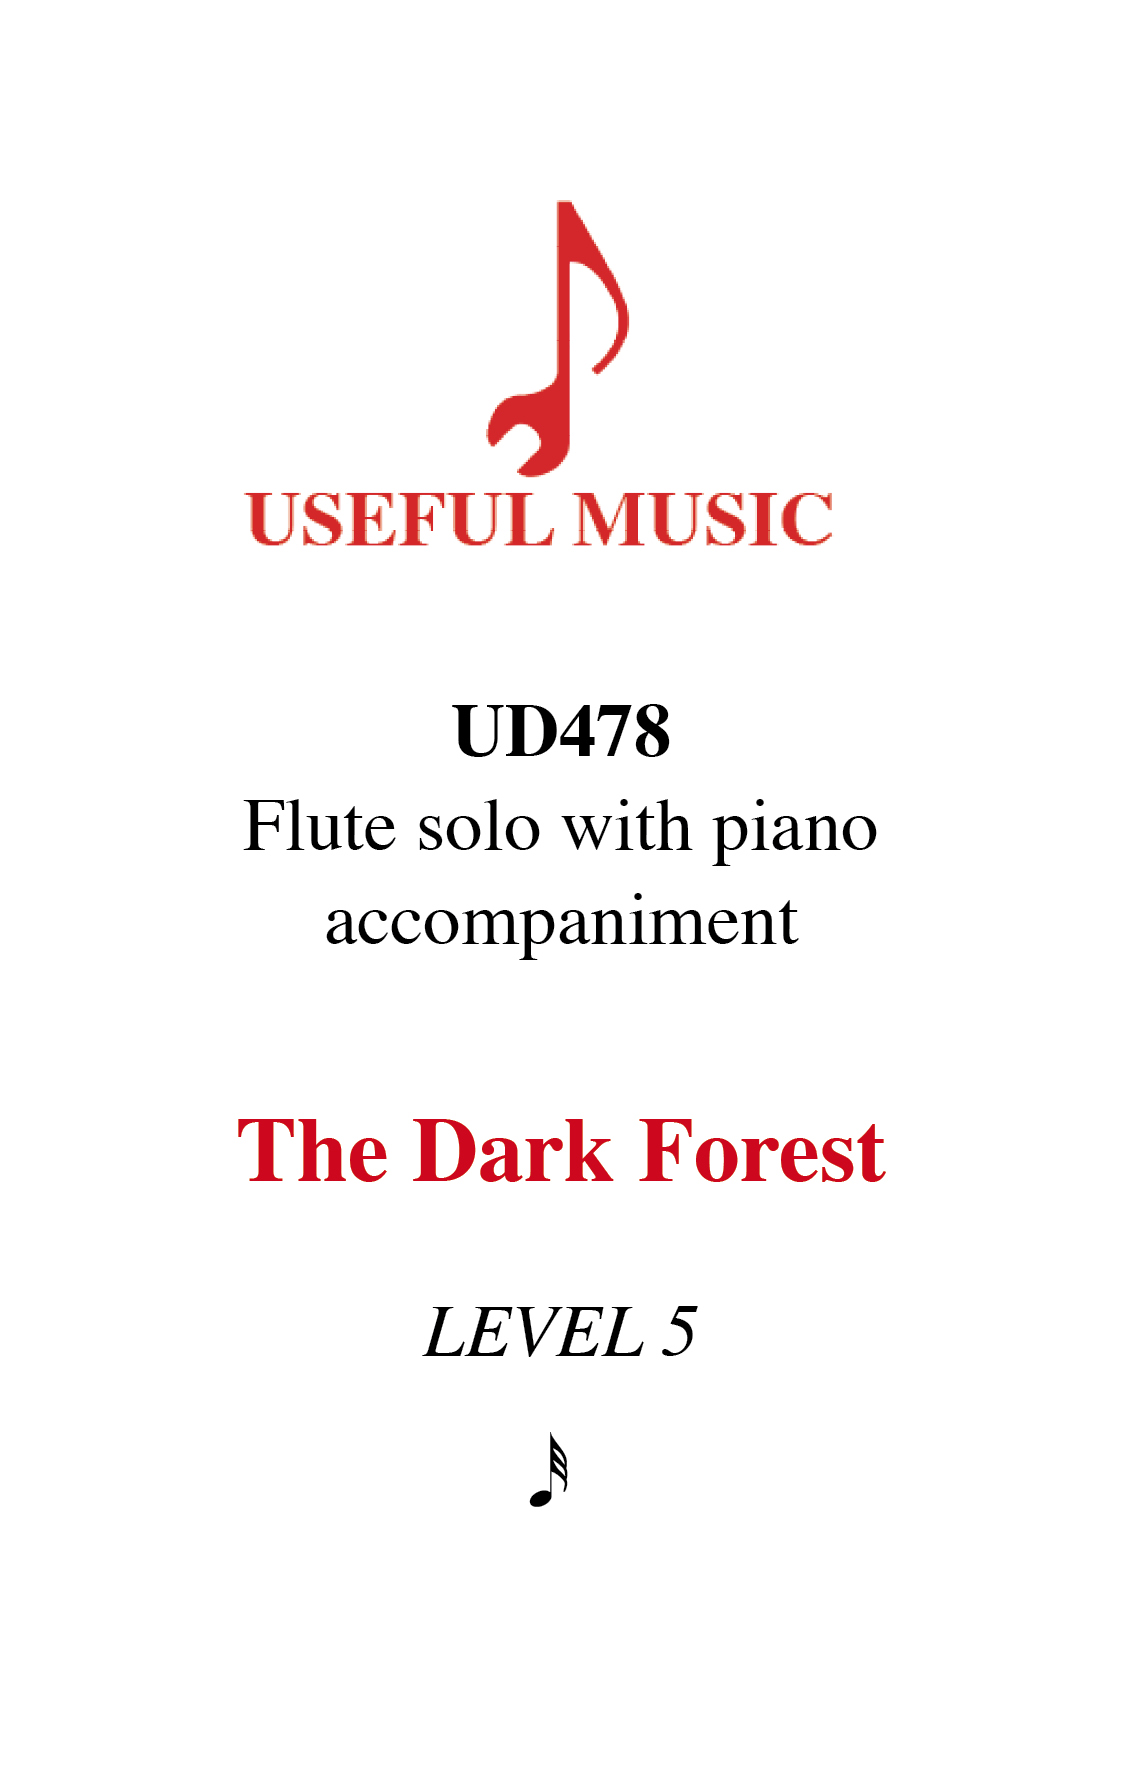 The Dark Forest - flute with piano accompaniment